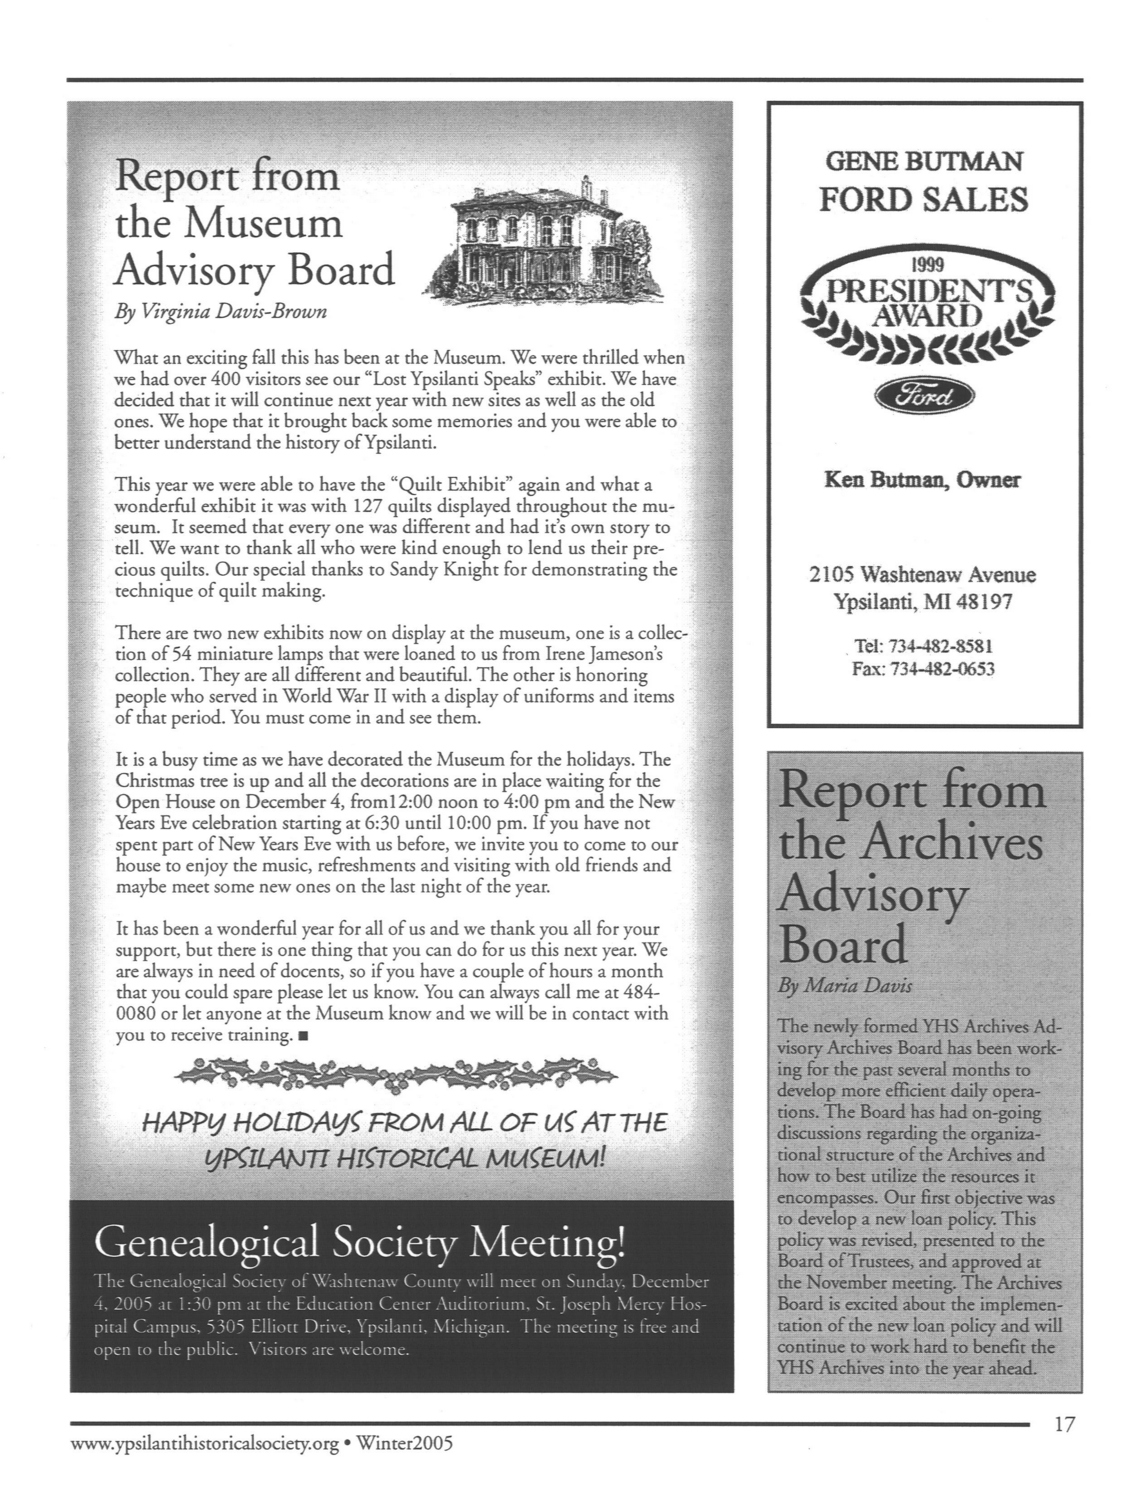 Report from the Museum Advisory Board image